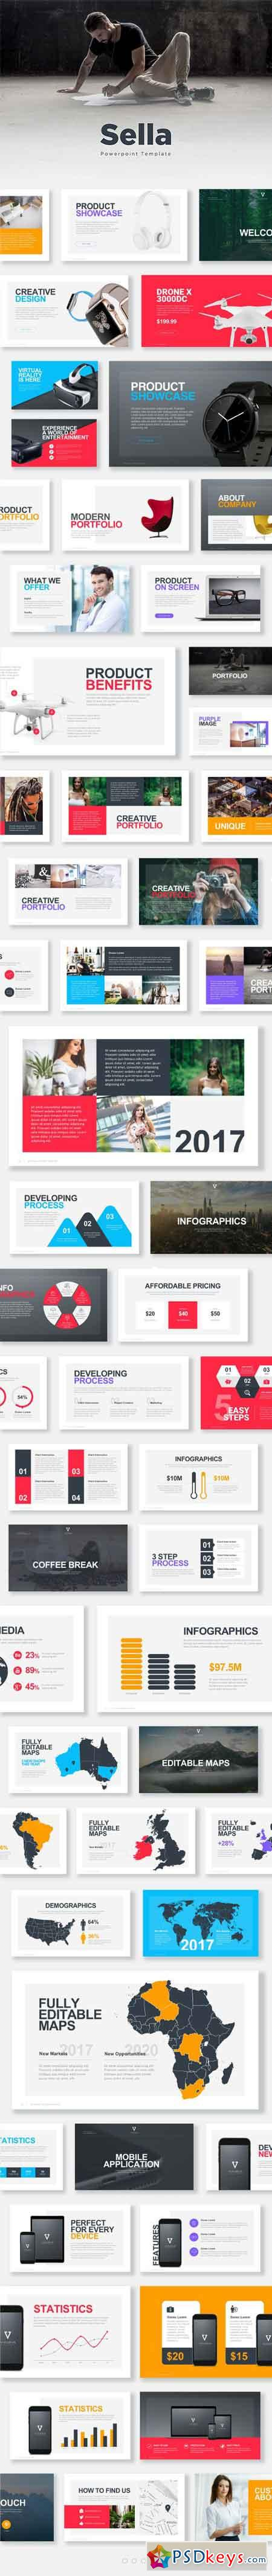 Sella Powerpoint Template 18036459